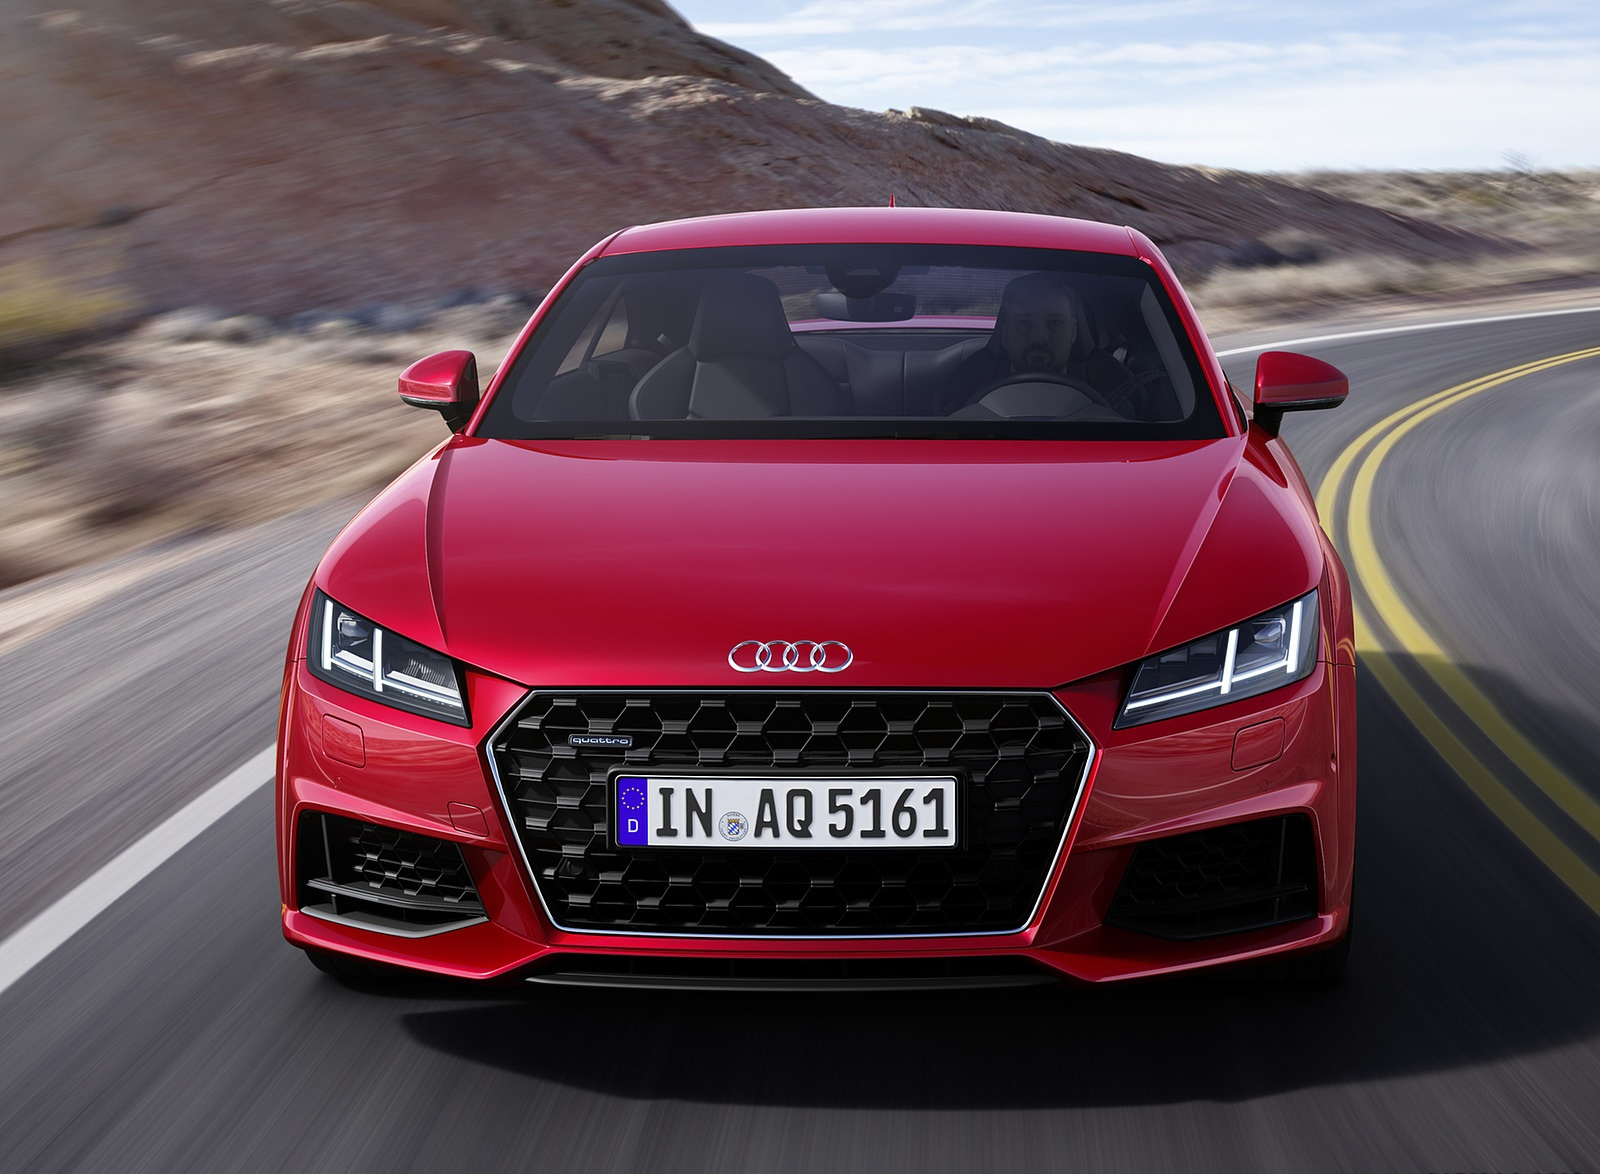 2019 Audi TT Coupe (Color: Tango Red) Front Wallpaper (1)